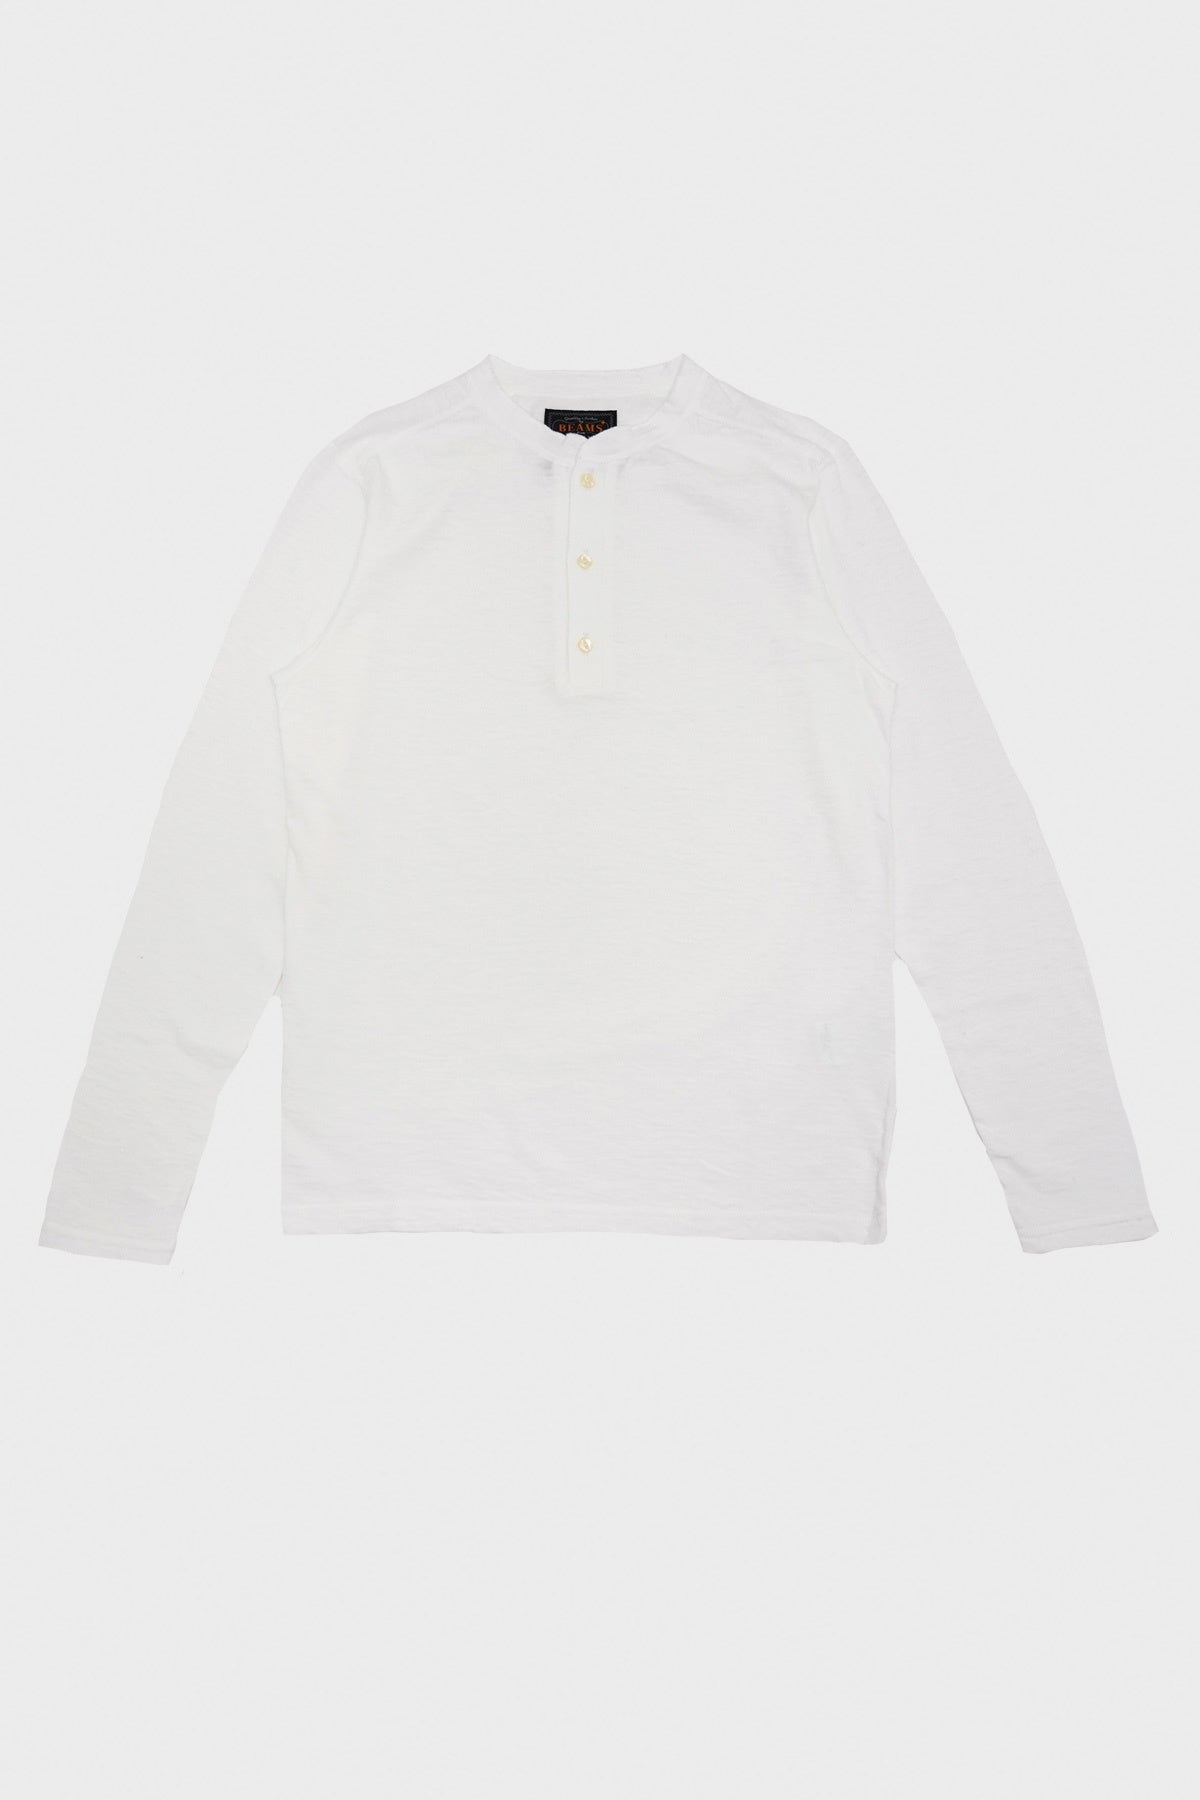 Beams Plus - Henley Neck Tee - Off White - Canoe Club